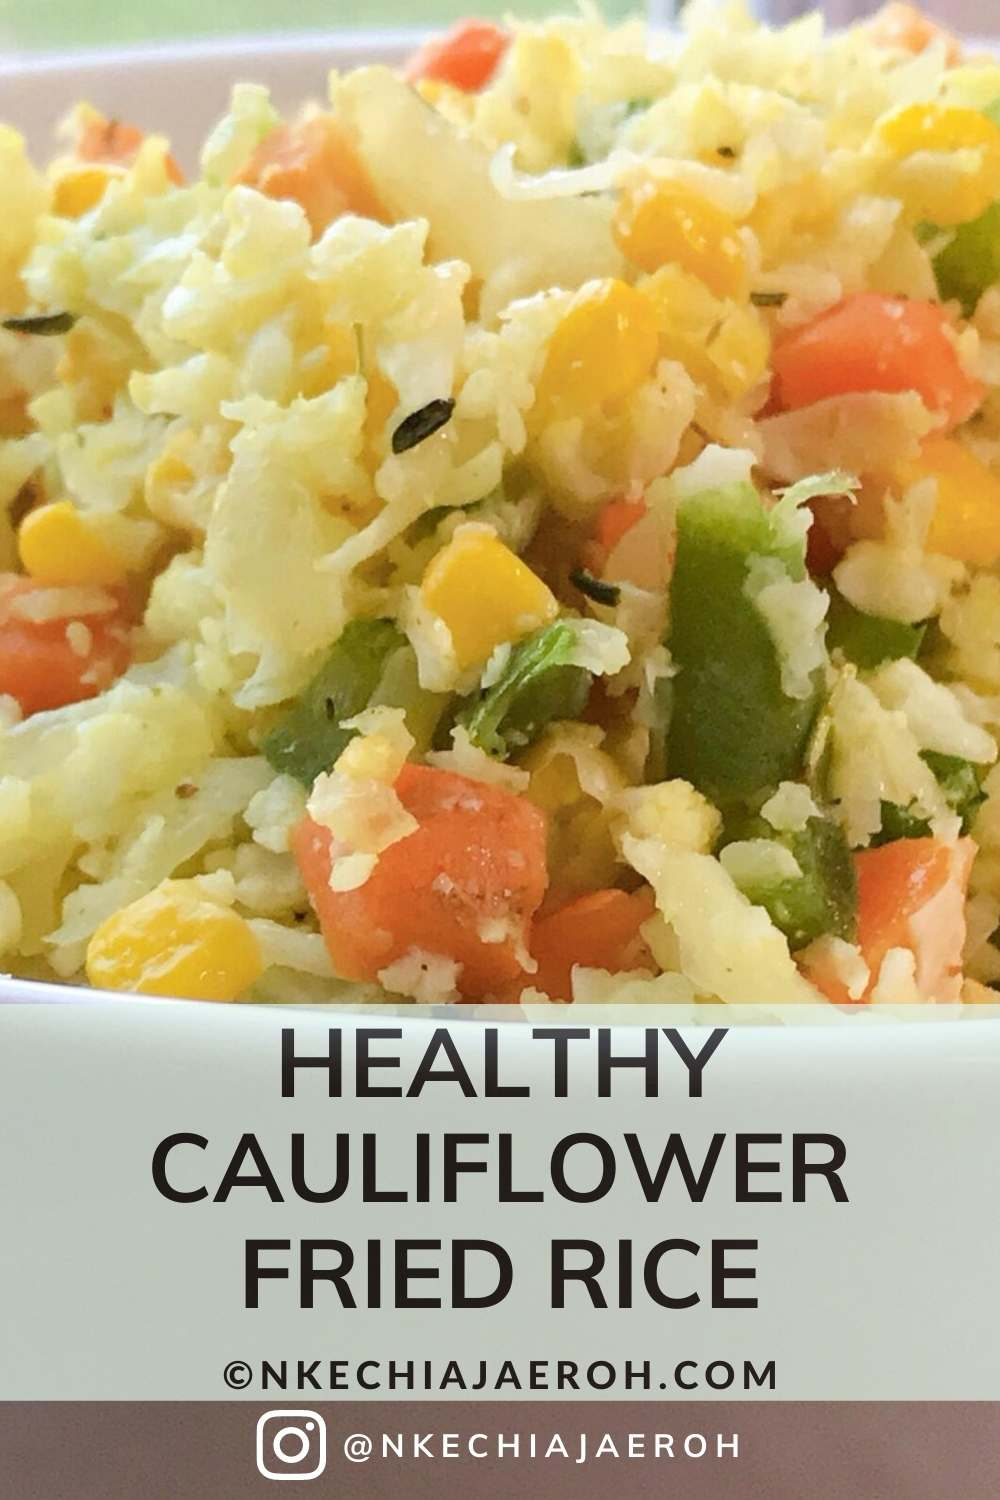 Easy to make gluten-free cauliflower fried rice recipe with vegetables. This recipe is perfect for a low carb diet, as well as a healthy vegan diet. Serve this as a side dish or add some meat, mushrooms, and tofu to make it a complete meal! This vegetable cauliflower fried rice recipe is ready under 15 minutes, amazing for low carb weekday lunches or dinner. This recipe is a crowd-pleaser #friedricerecipe #lowcarb #cauliflowerfriedrice #Cauliflowerrecipe #weightlossrecipe